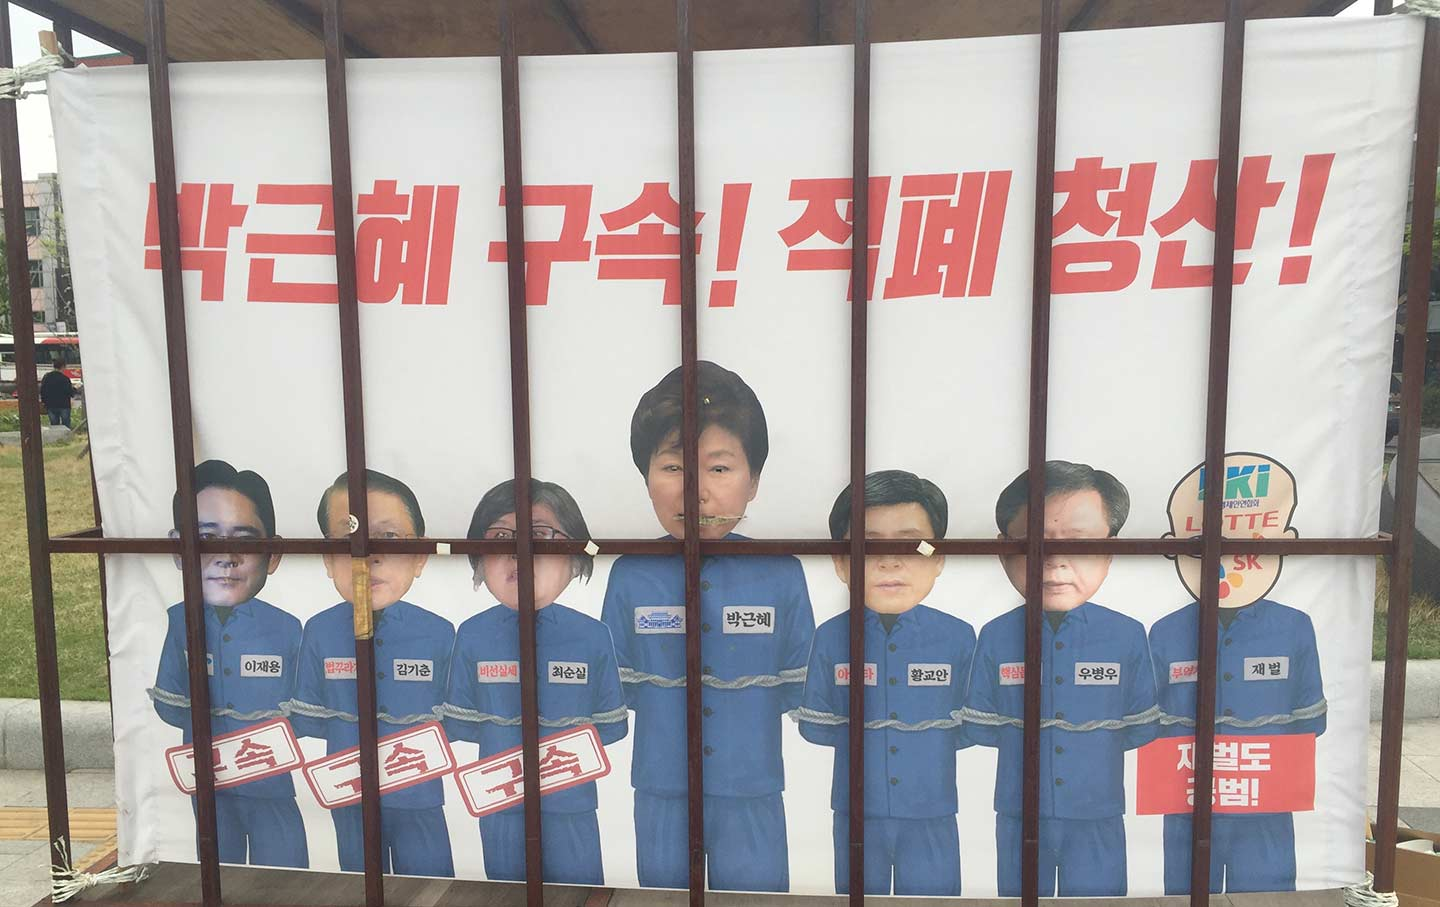 A sign in Gwangju calling for Park Geun-hye's imprisonment